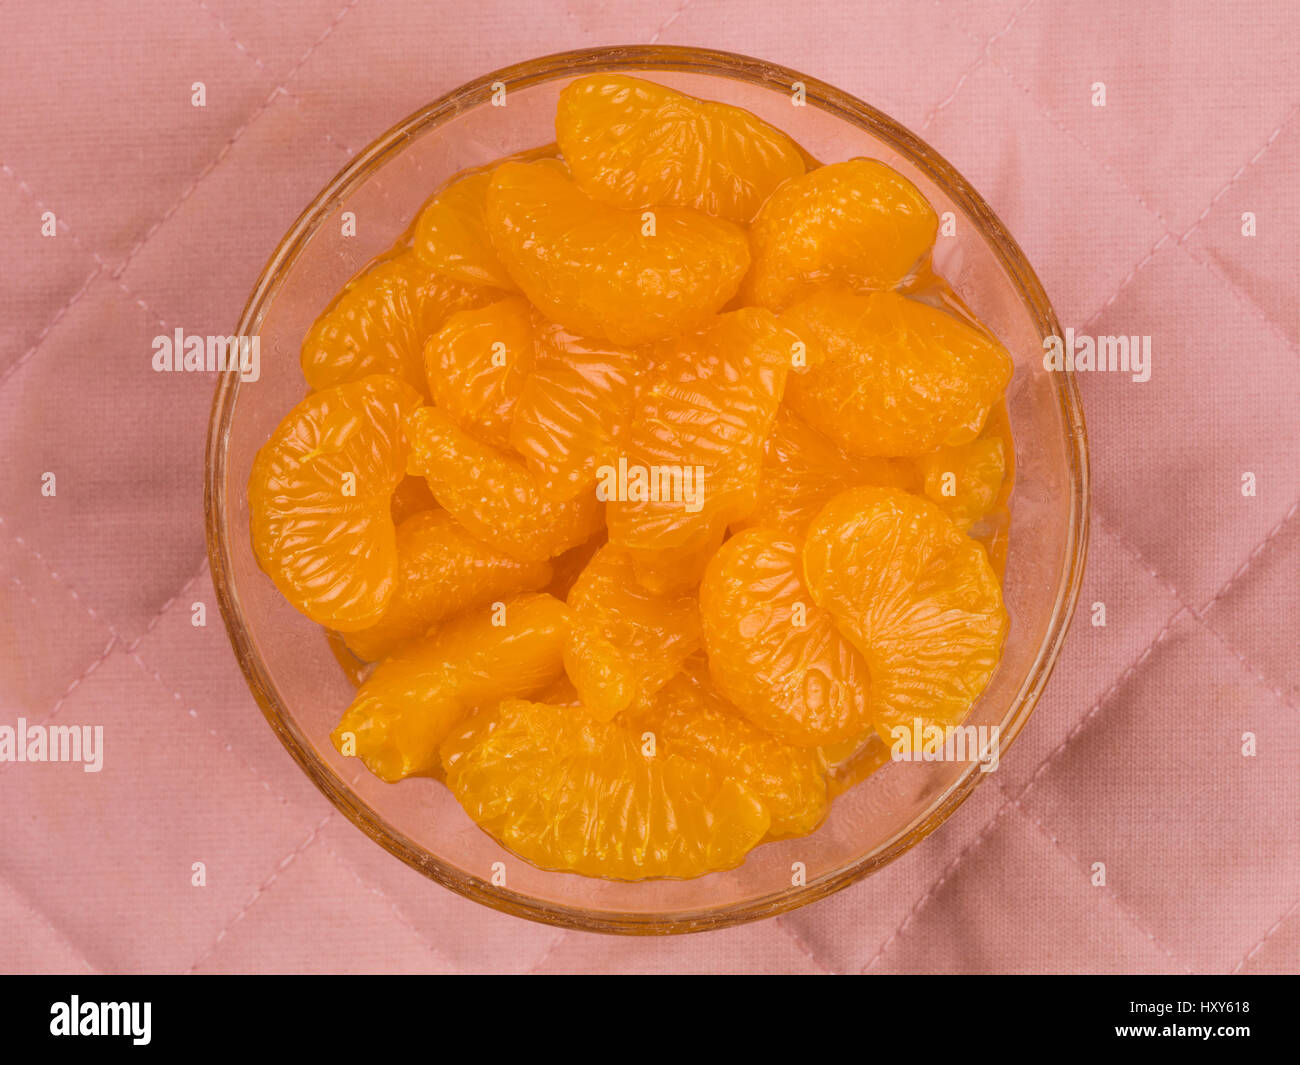 Mandarin Orange Segments in a Bowl Against a Pink Background - Stock Image